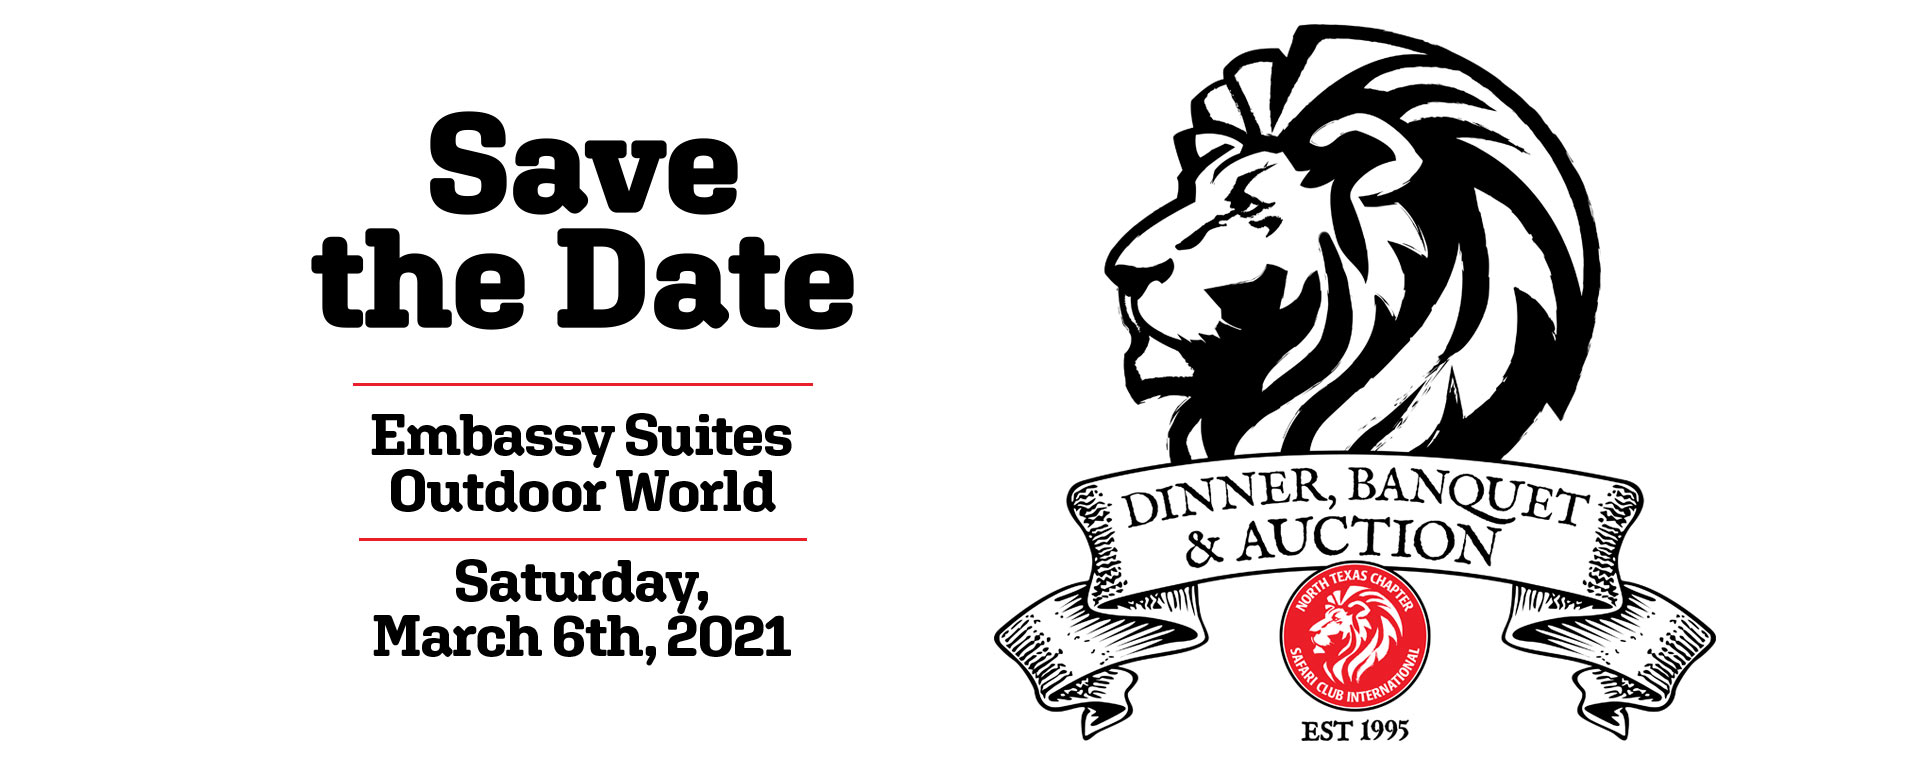 North Texas Chapter Safari Club International 2018 Banquet Dinner and Auction